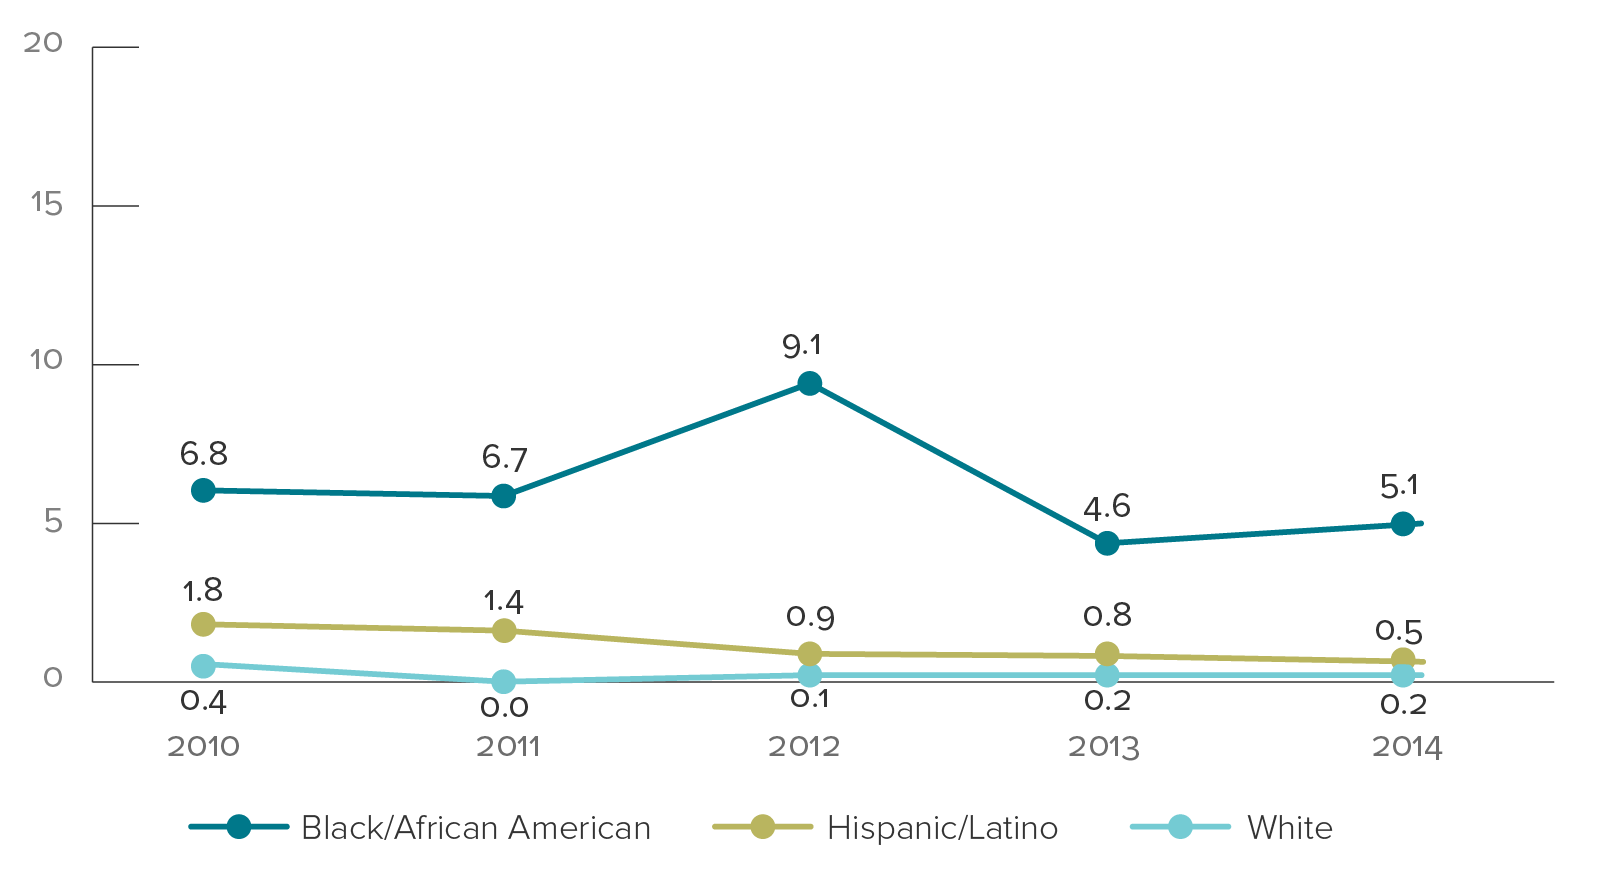 This chart shows rates of perinatally acquired HIV infections by year of birth and mother's race/ethnicity from 2009 to 2013. In 2009, Black/ African American = 14.6, Hispanic/ Latina = 3.0, White = 0.3. In 2010, Black/ African American = 9.1, Hispanic/ Latina = 2.5, White = 0.9. In 2011, Black/ African American = 9.5, Hispanic/ Latina = 2.0, White = 0.3. In 2012, Black/ African American = 12.9, Hispanic/ Latina = 1.4, White = 0.2. In 2013, Black/ African American = 7.1, Hispanic/ Latina = 1.1, White = 0.6.